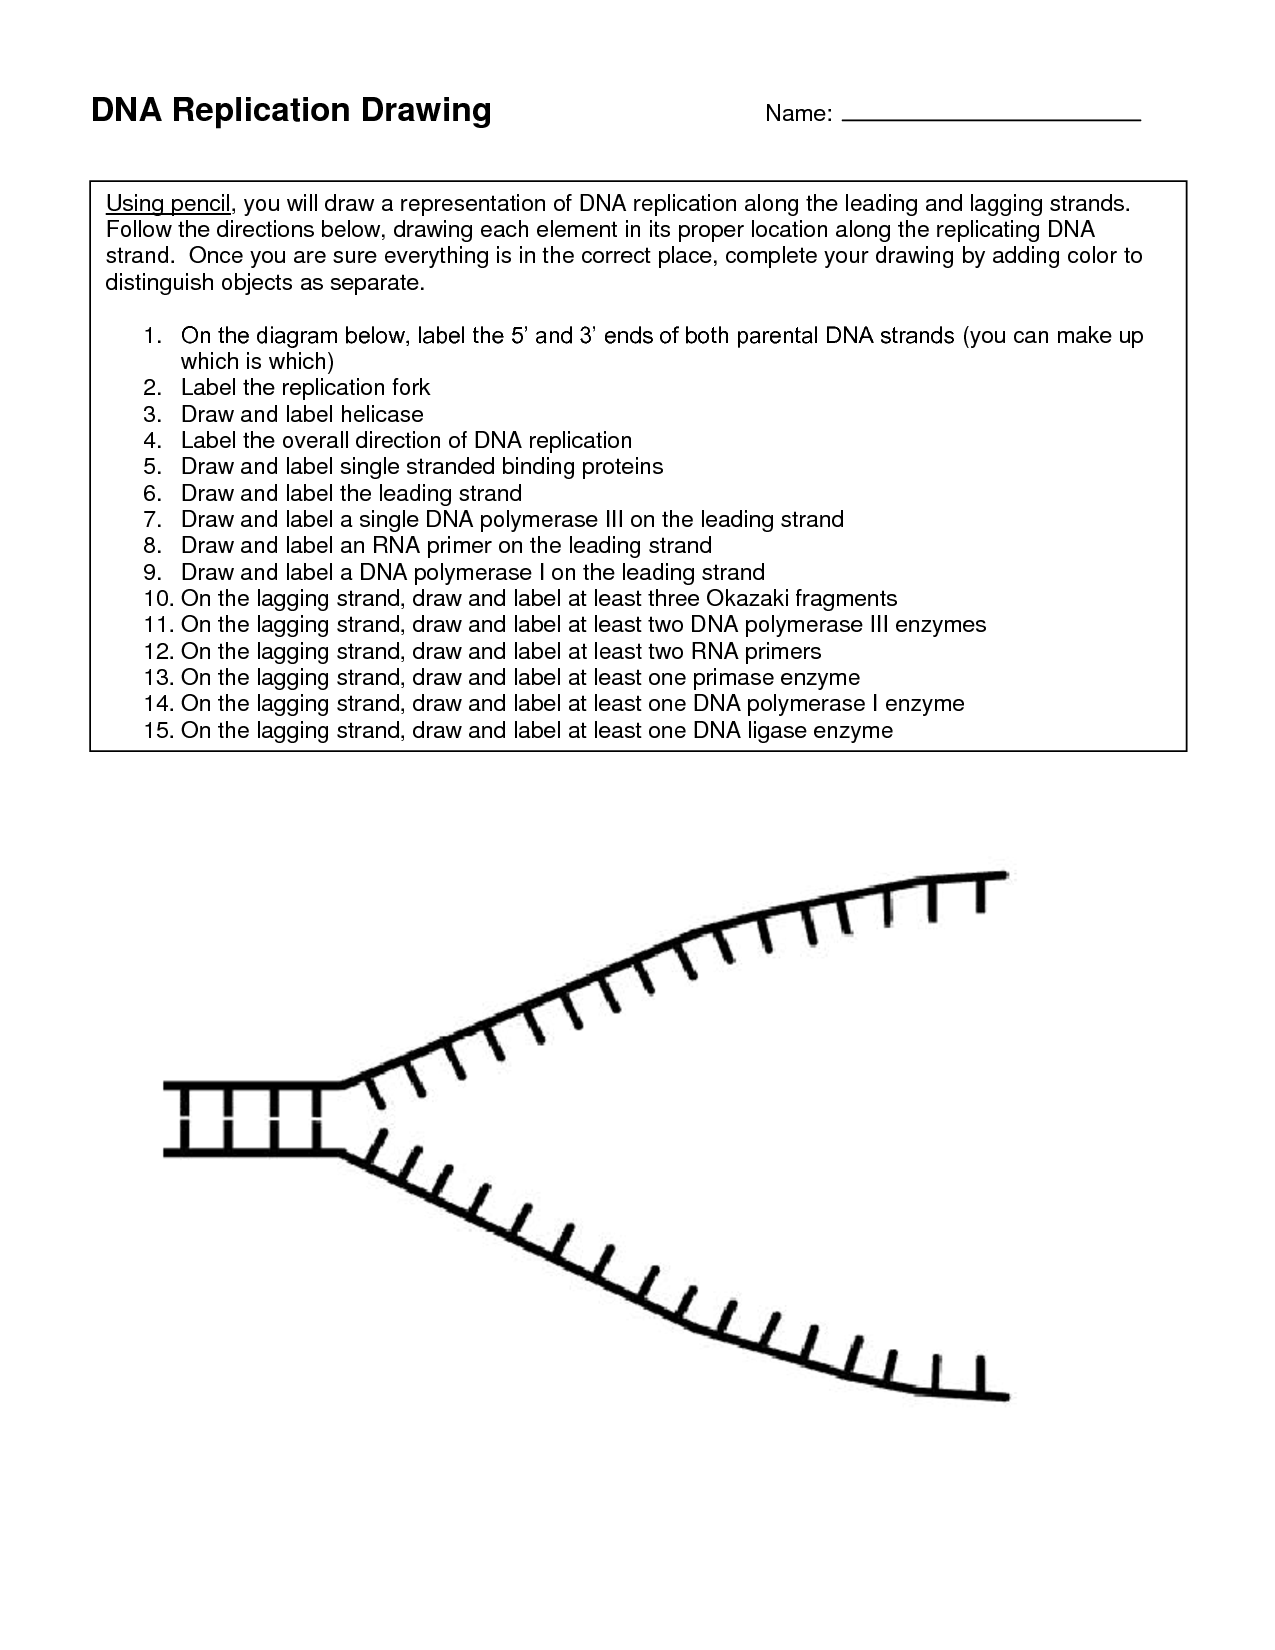 worksheet Genetic Code Worksheet lambiase tina honors biology dna replication drawing honors